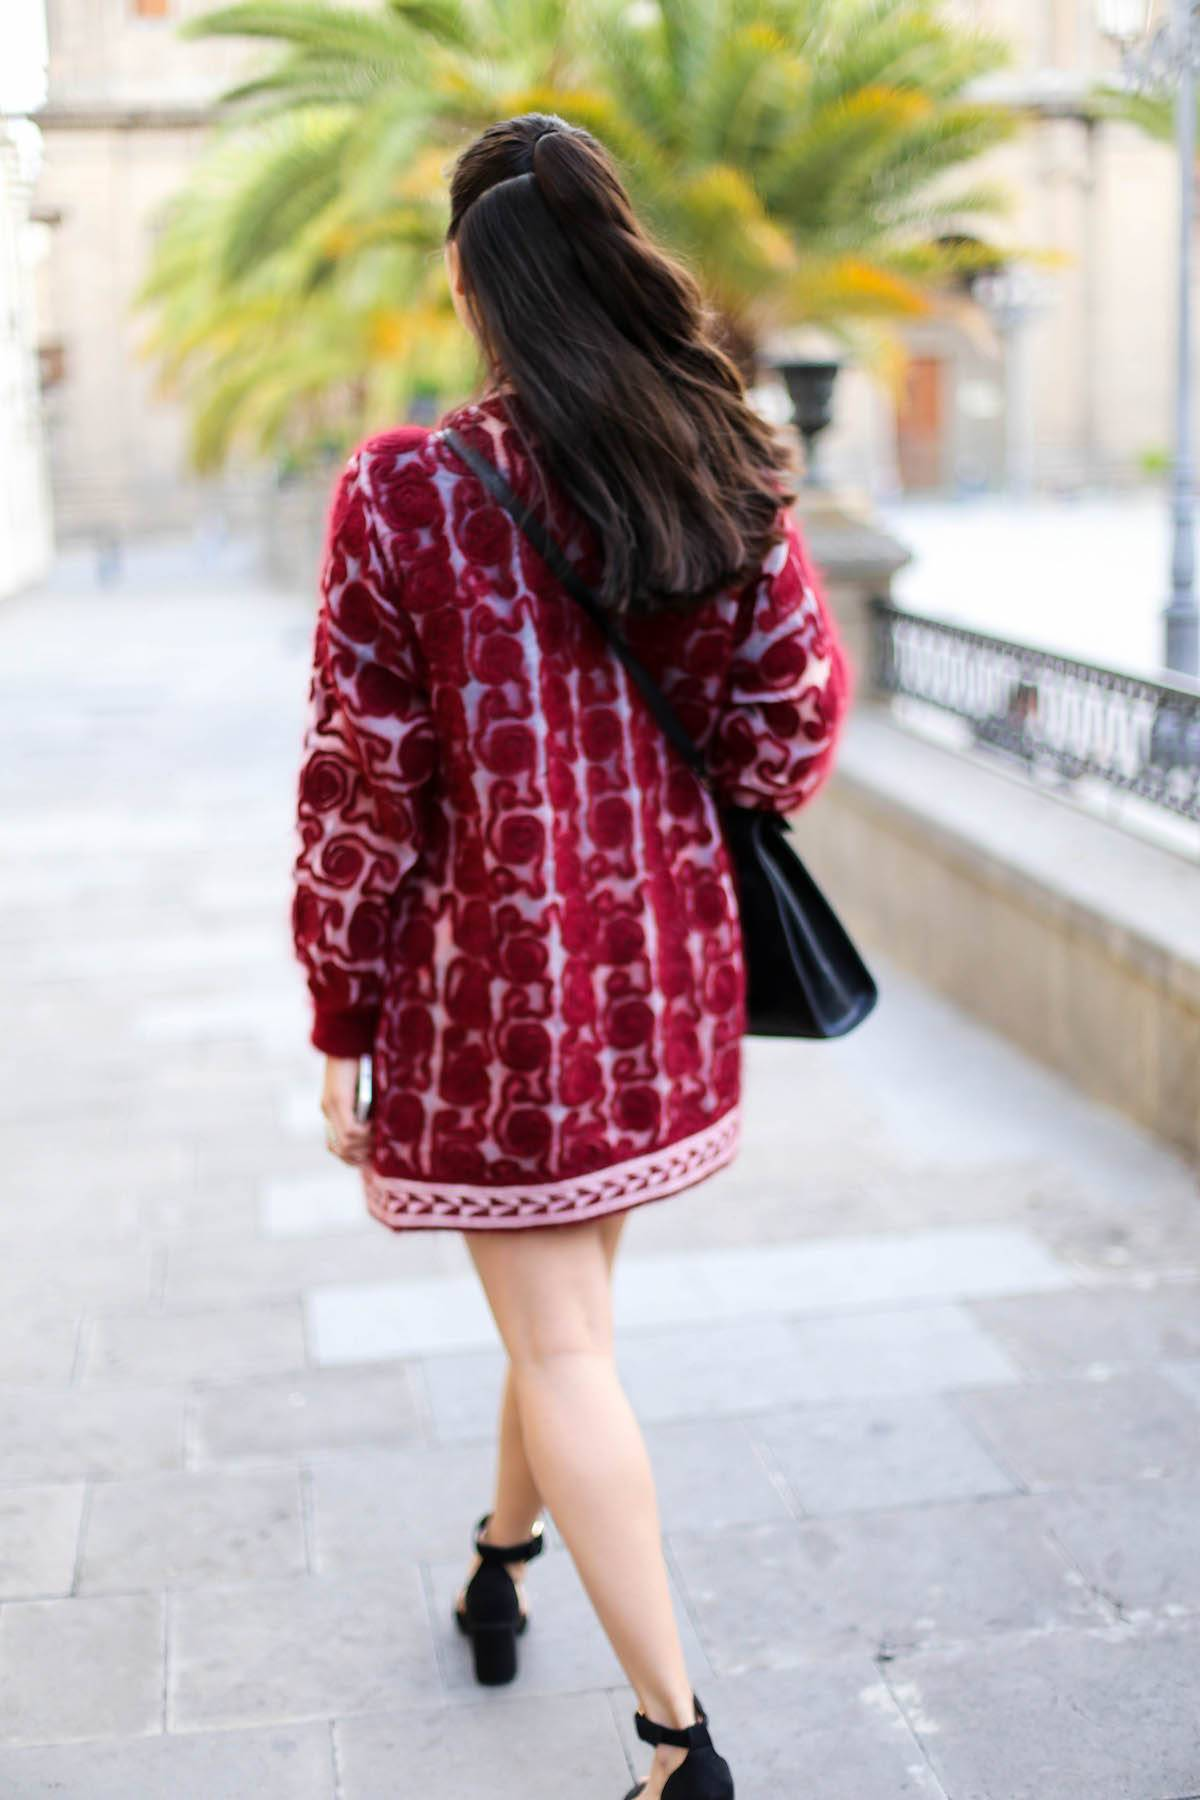 THE PATTERNED SUMMER COAT